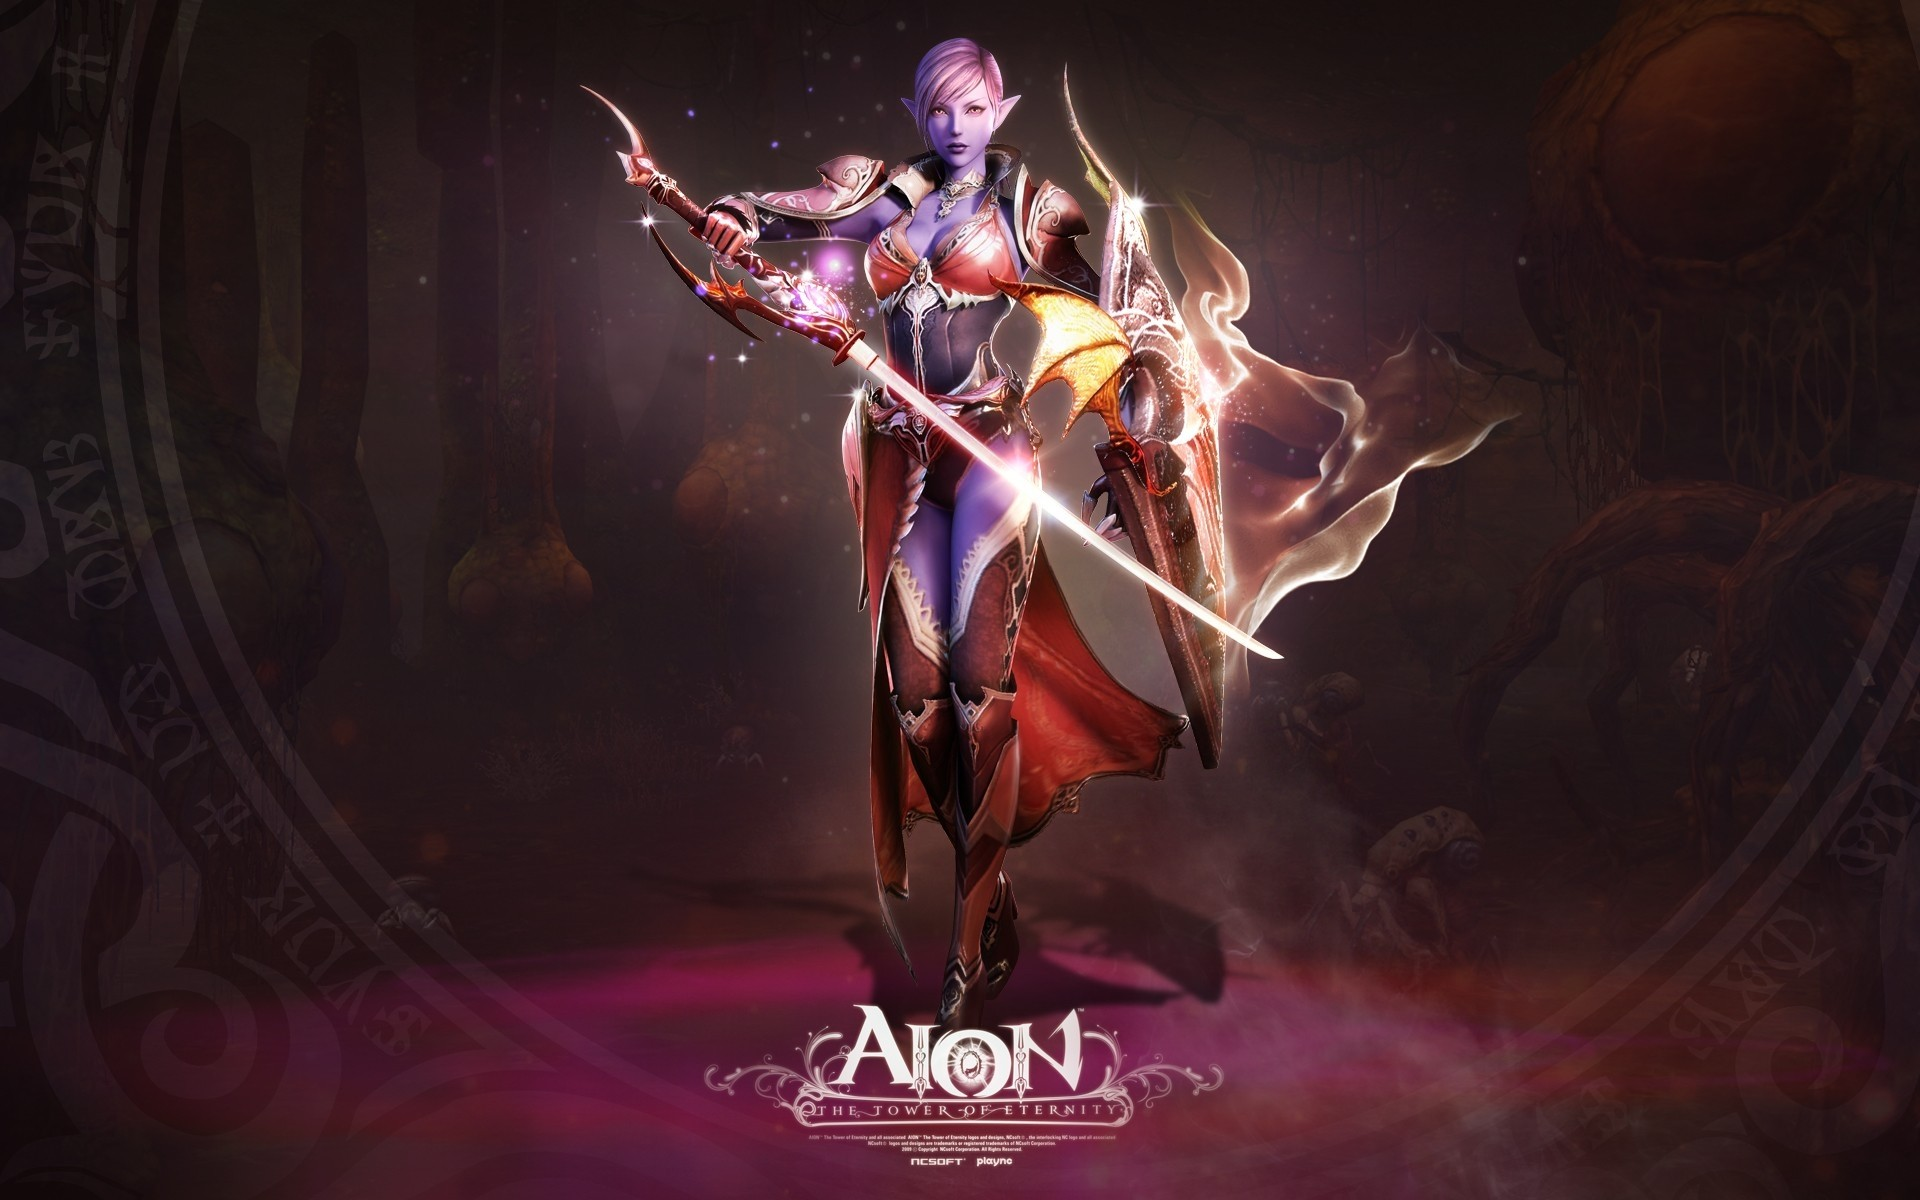 1920x1200 Wallpaper Aion the tower of eternity, Girl, Skull, Magic, Fire, Monster HD,  Picture, Image